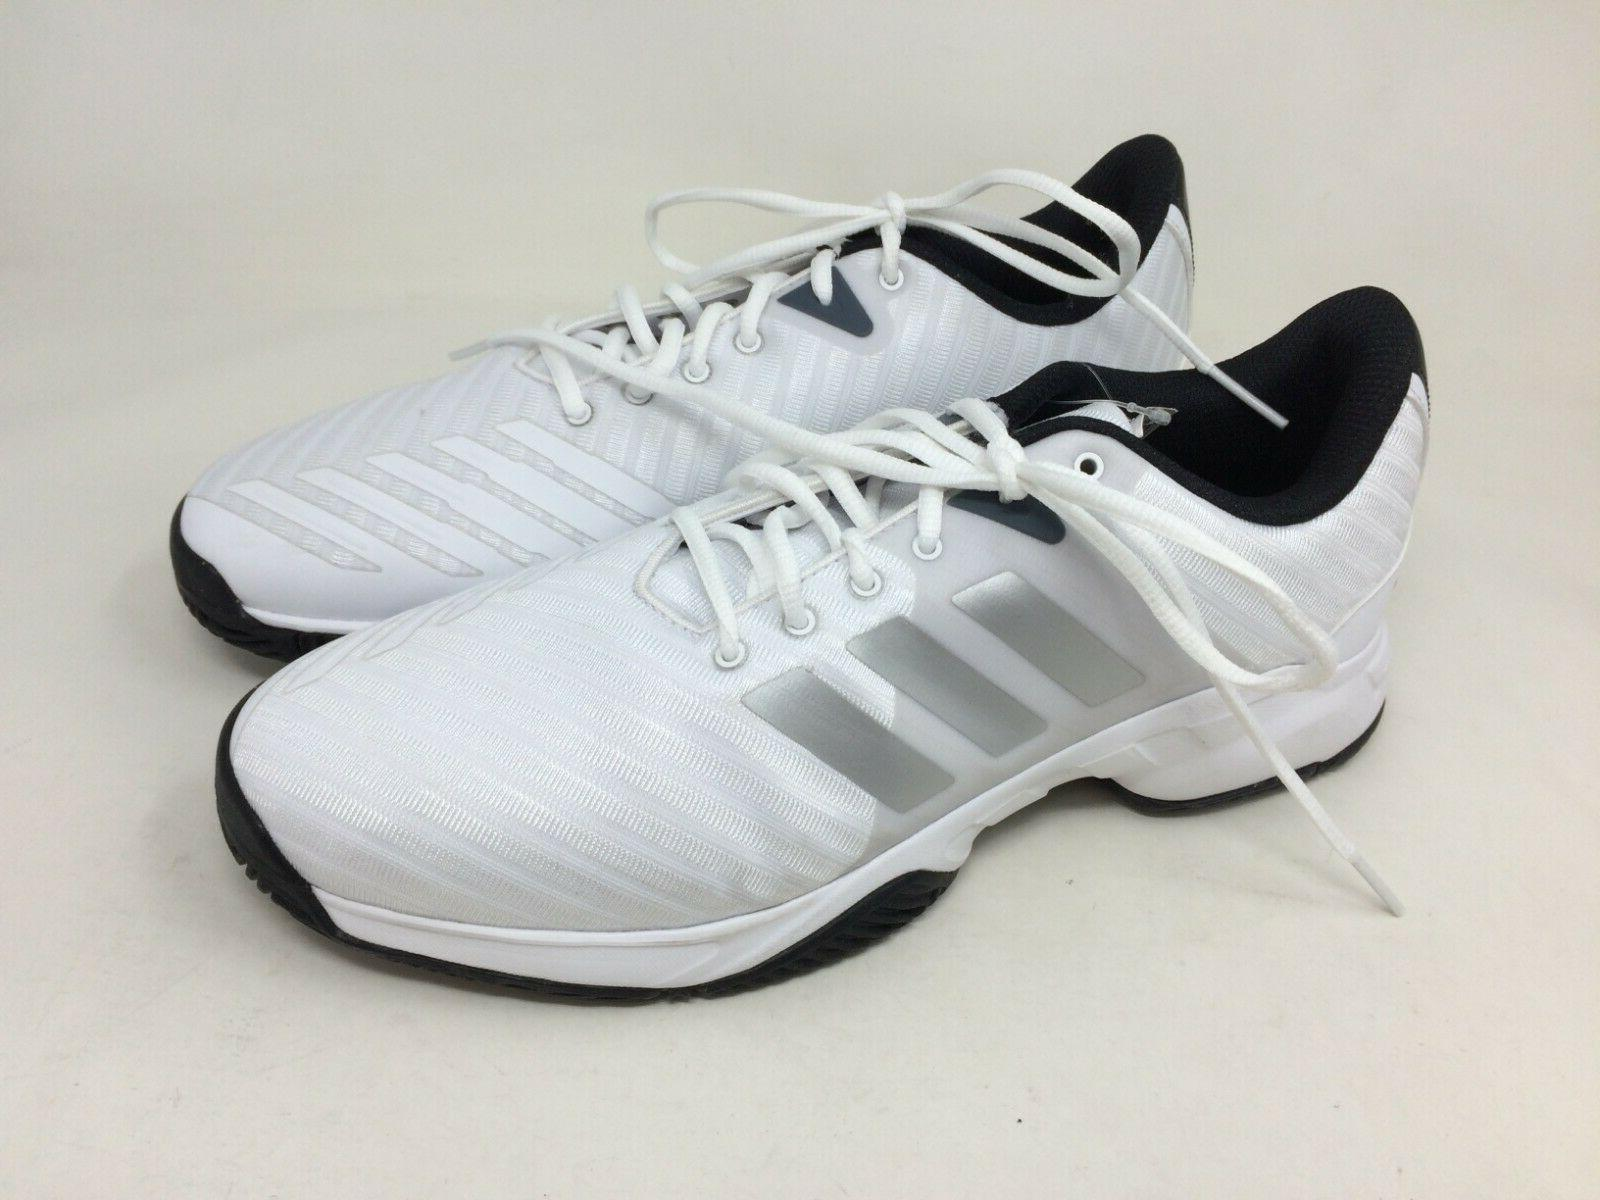 new men s cm7817 2e barricade court